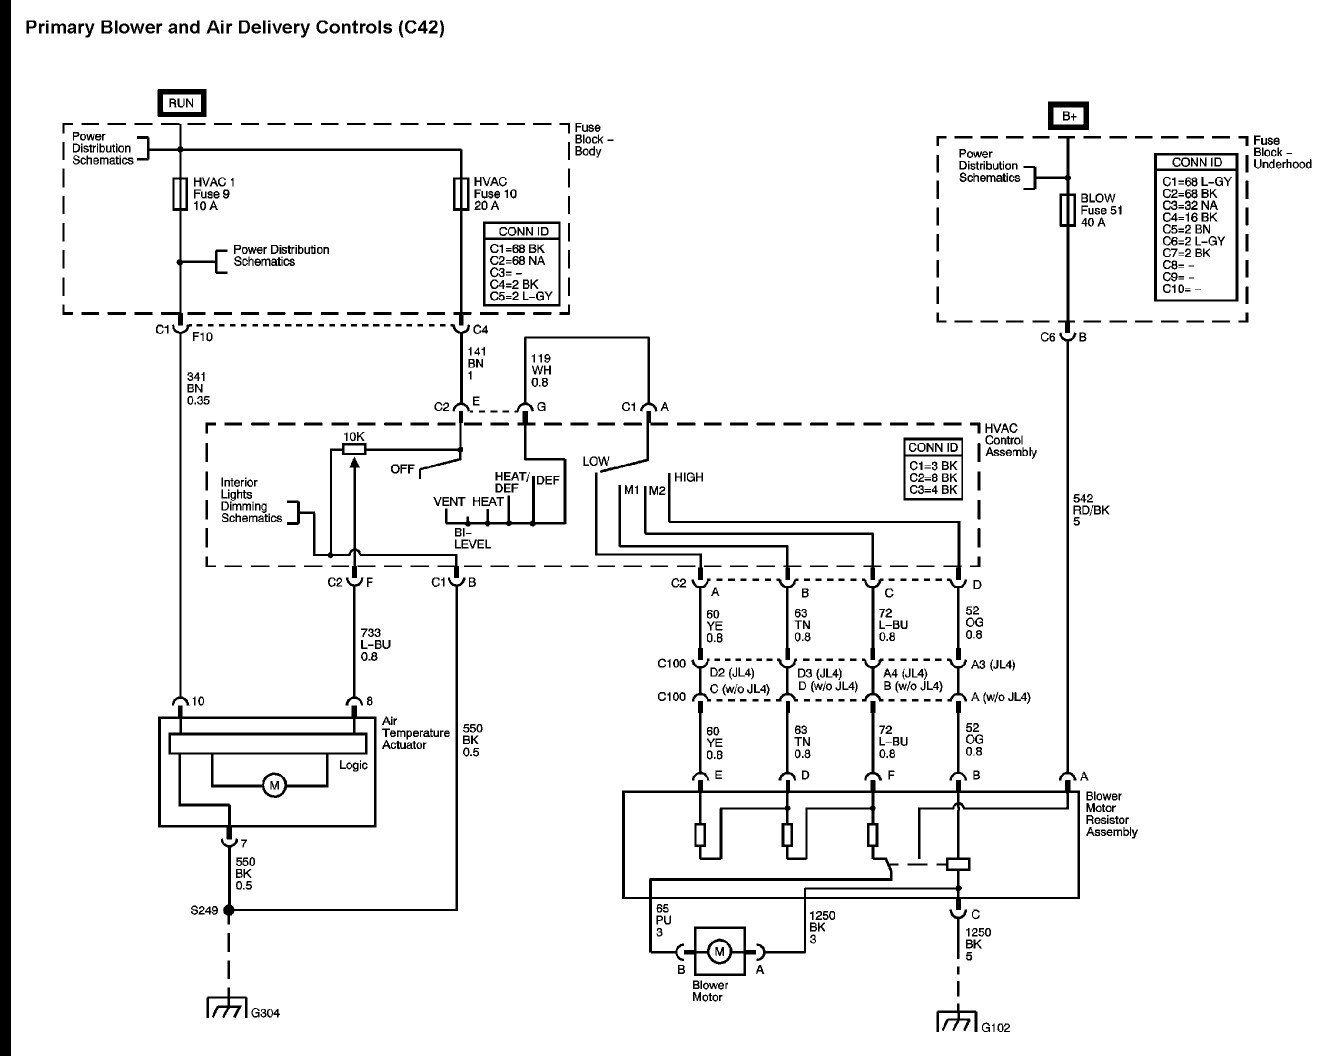 Chevy Silverado Blower Motor Resistor Wiring Diagram